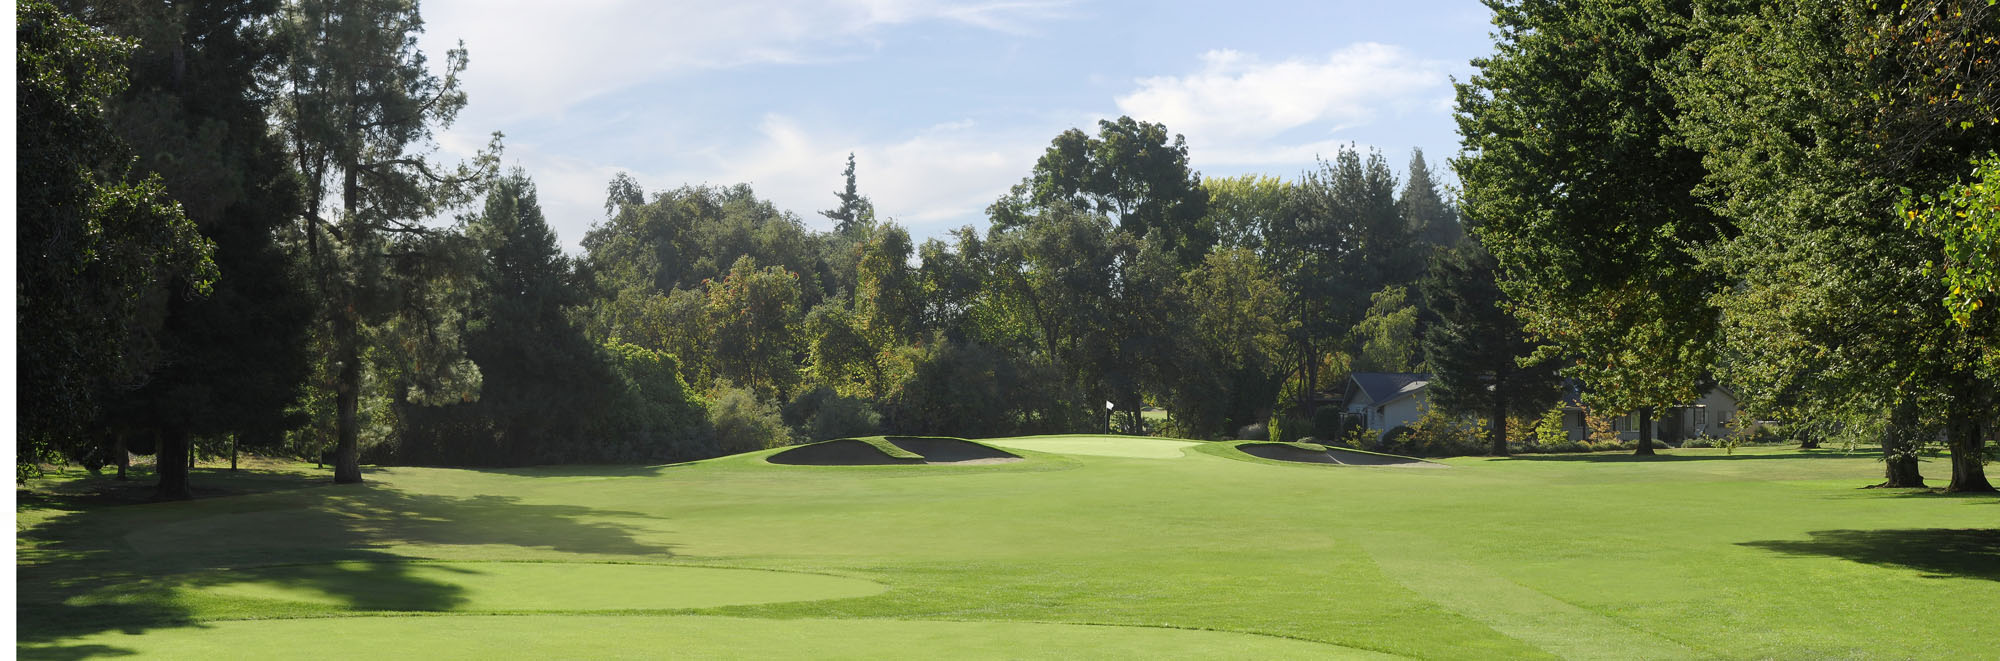 Golf Course Image - Butte Creek Country Club No. 12